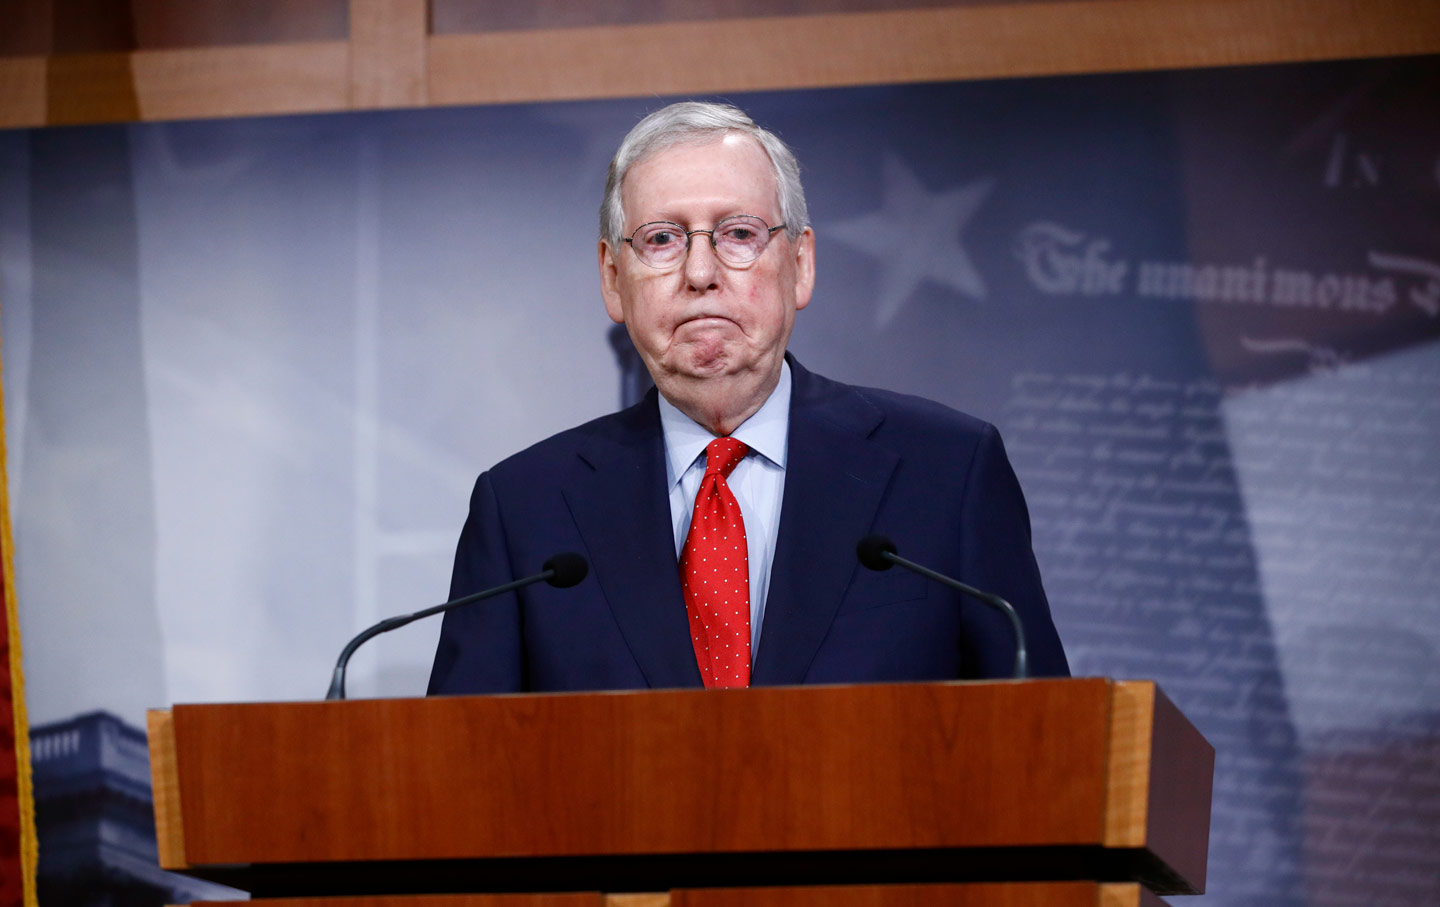 mitch-mcconnell-sad-face-ap-img